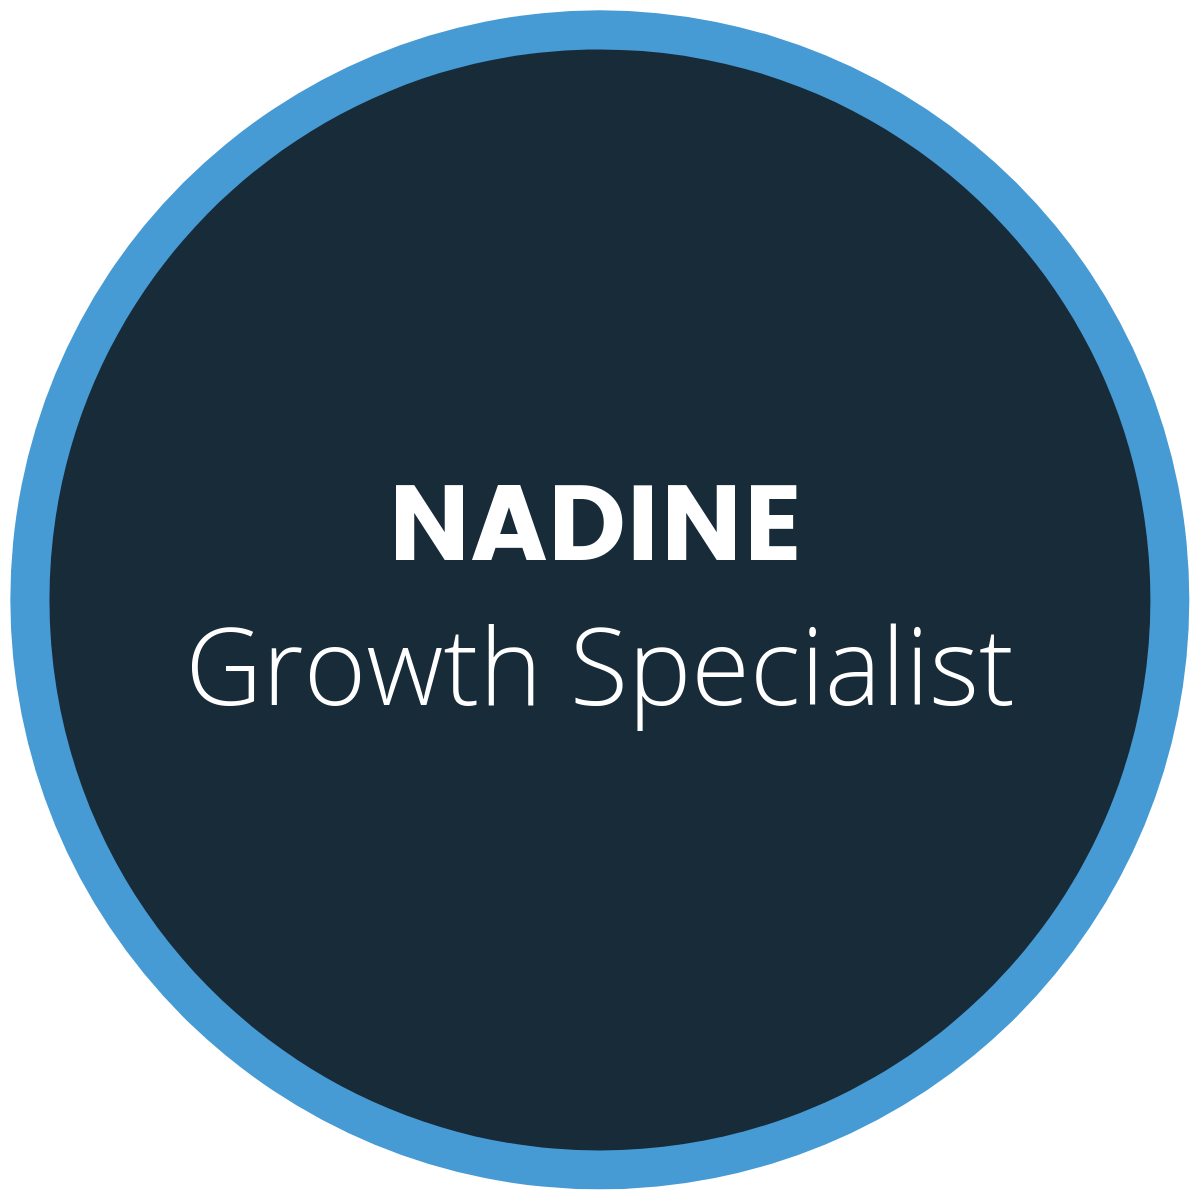 nadine-web4realty